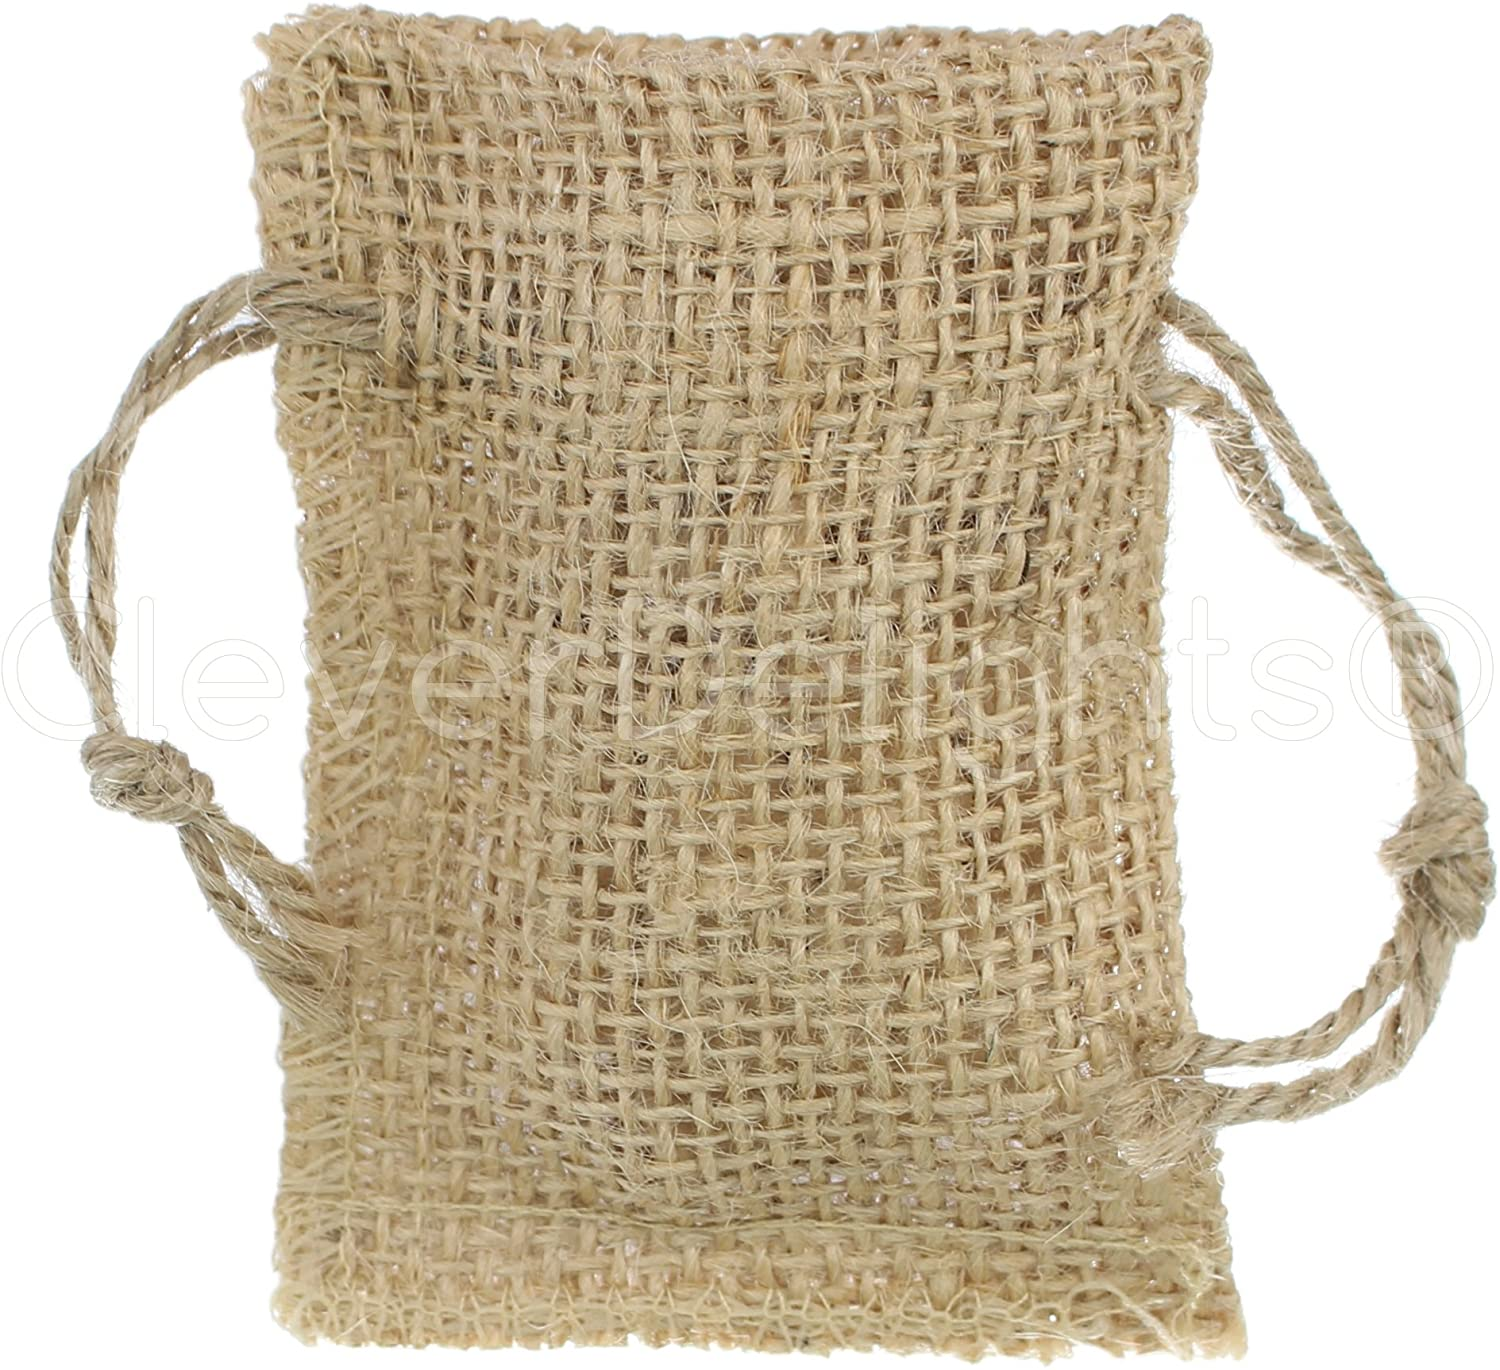 25 Pack - CleverDelights 2 x 3 Burlap Bags with Natural Jute Drawstring